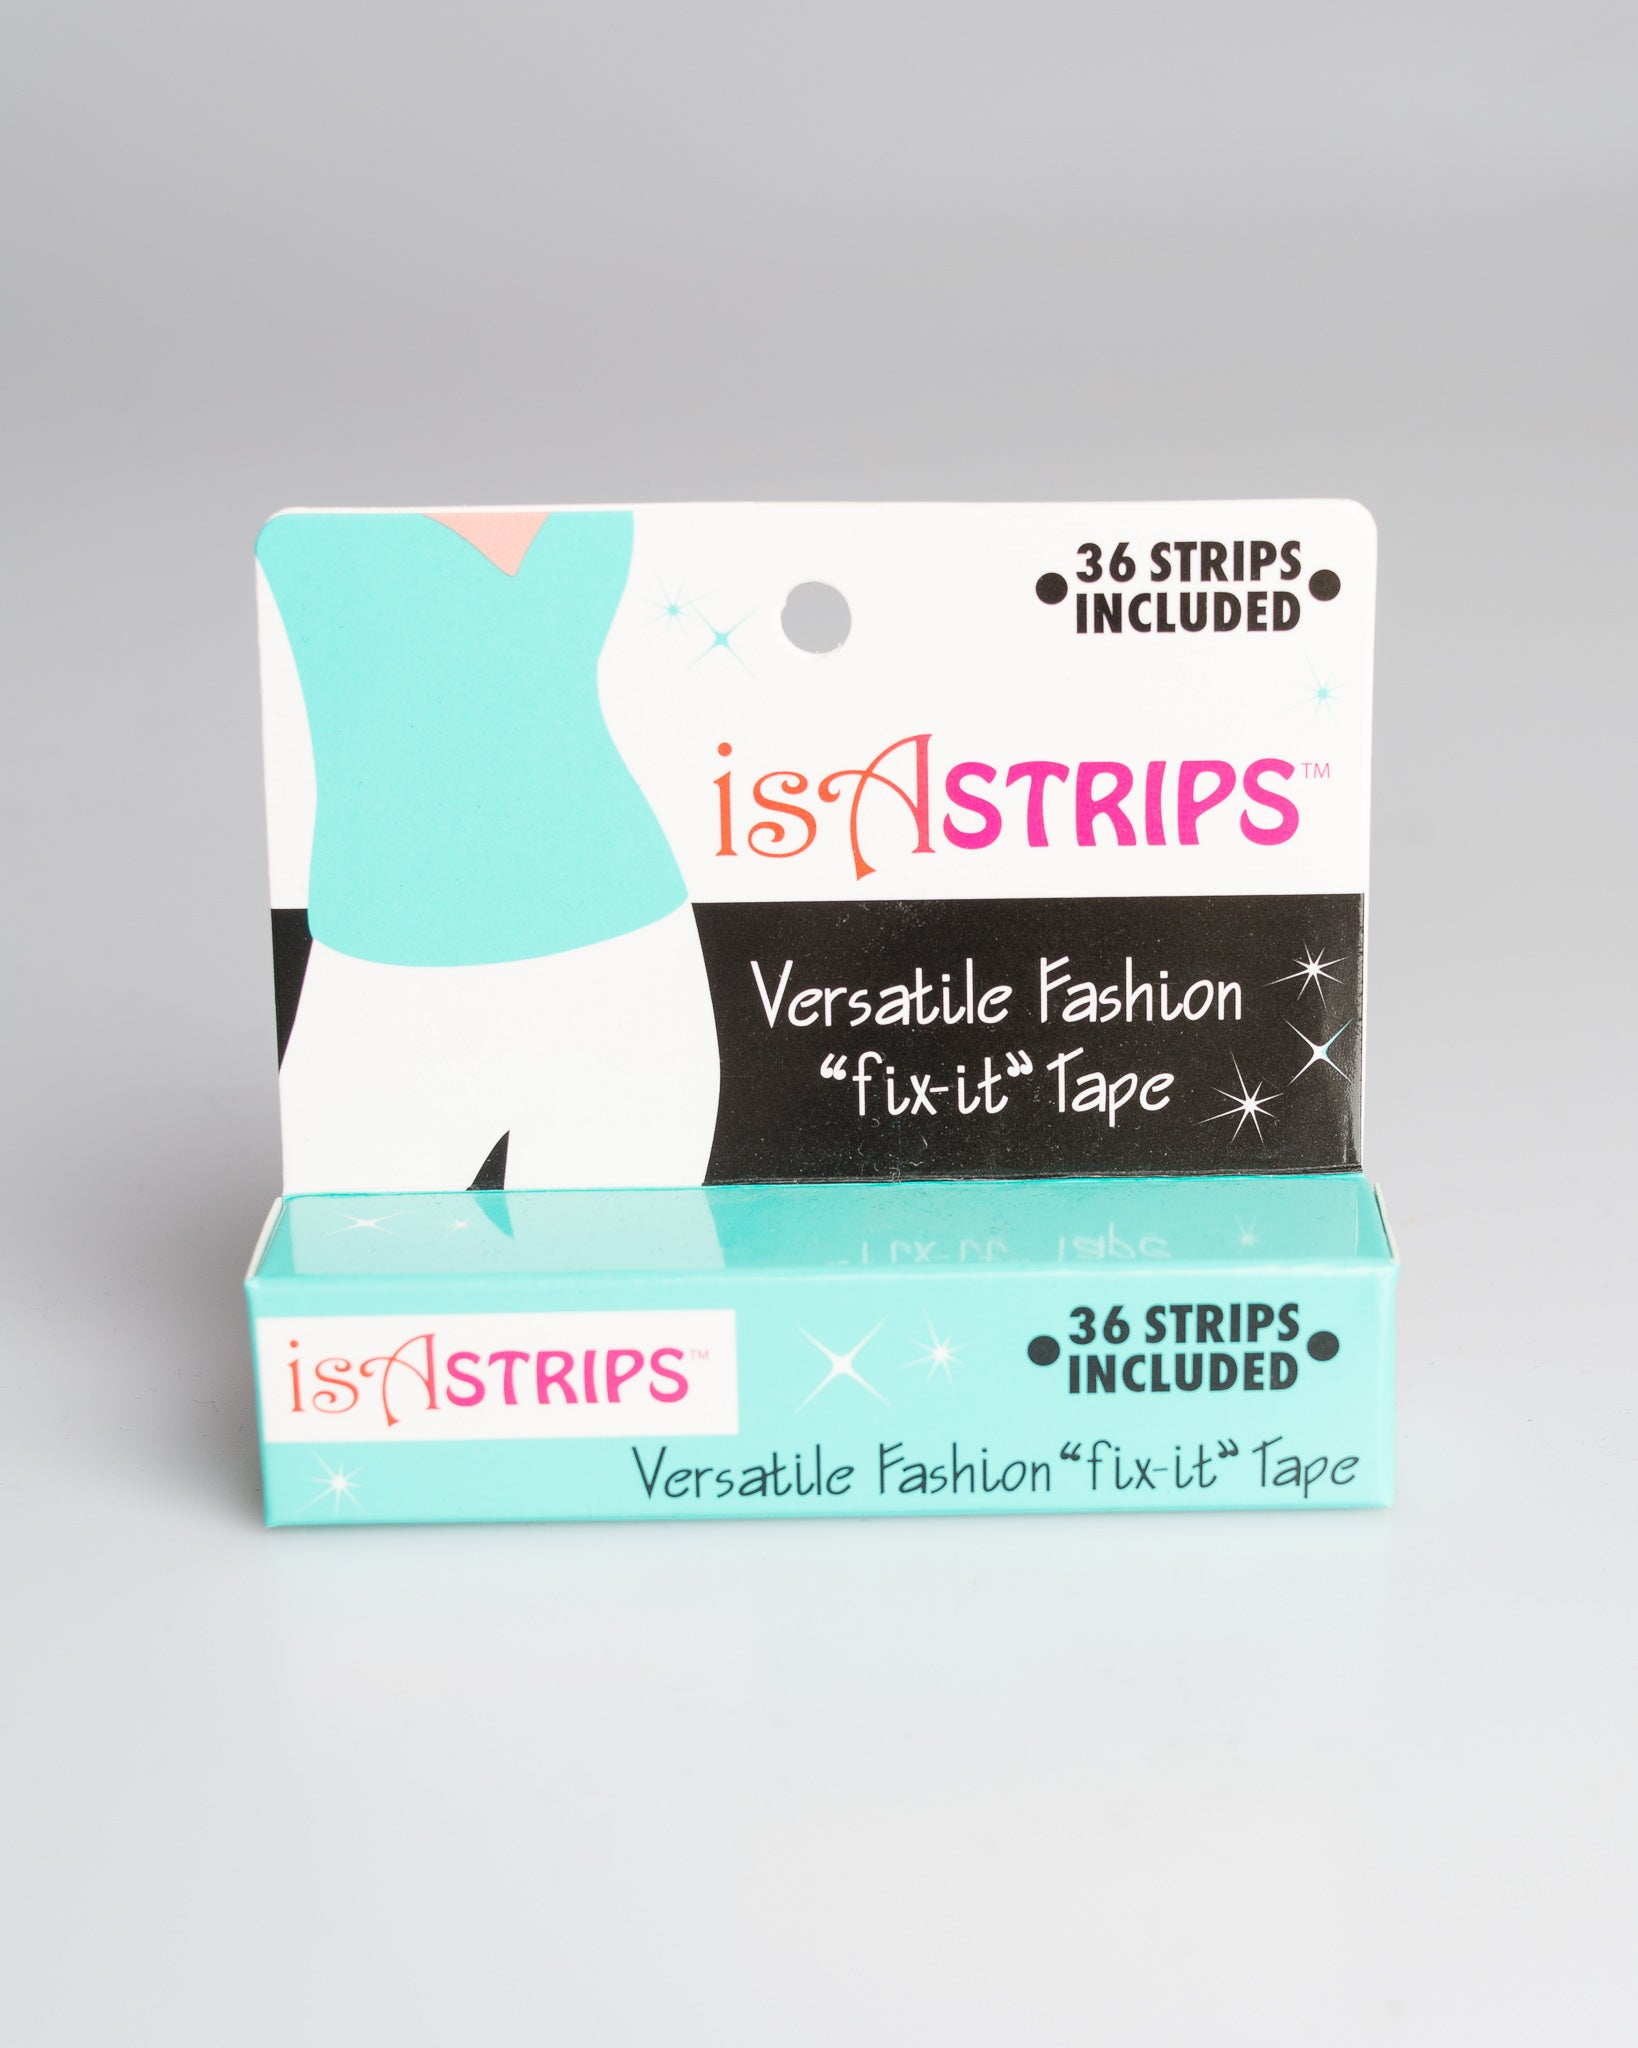 isAStrips - The 308 Boutique